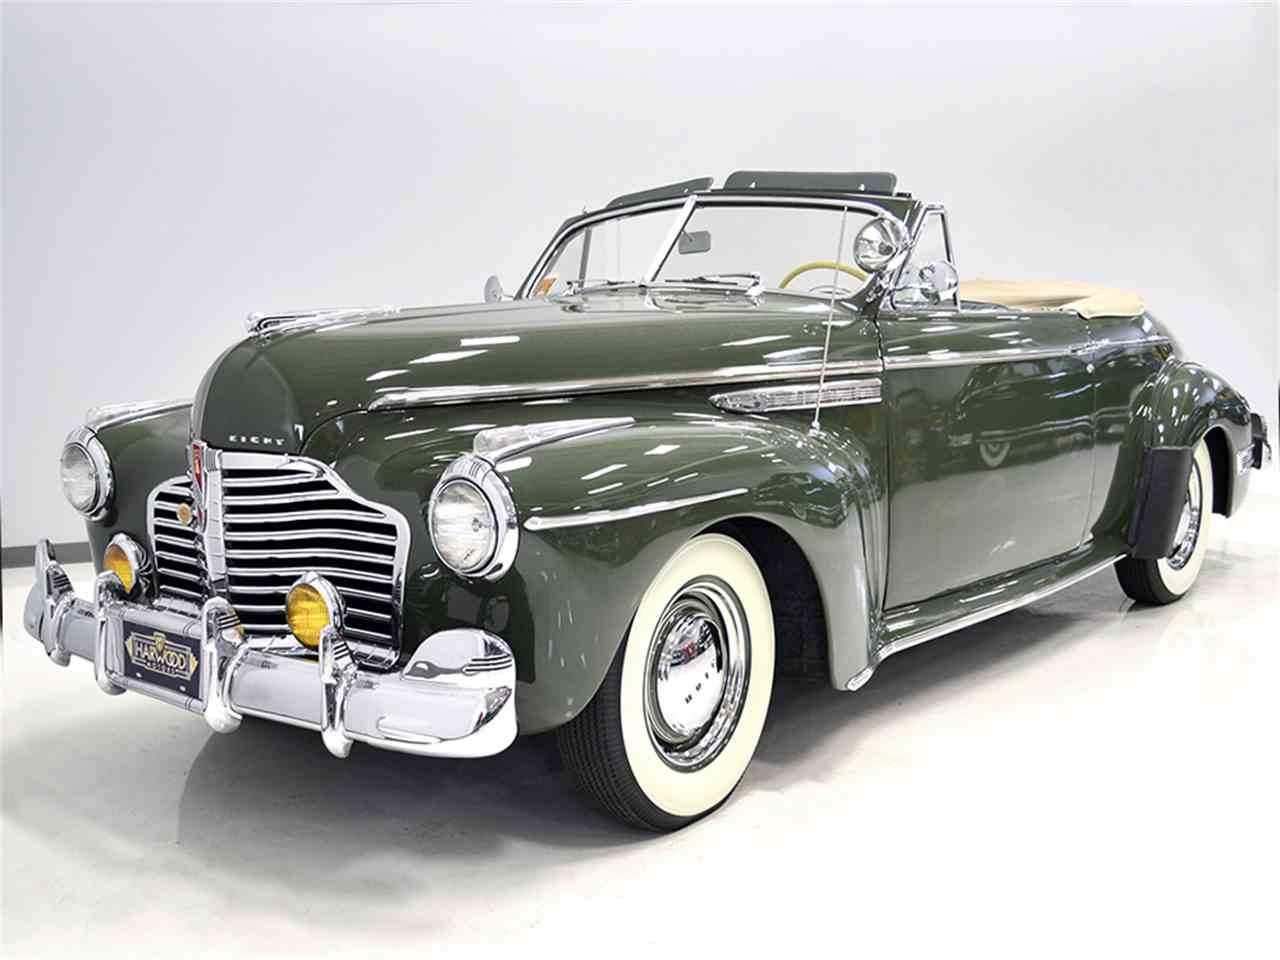 Search also Ac System Question 8288 in addition 1948 Chrysler Windsor Wiring Diagram additionally 1338085 Ford Truck Information And Then Some further P 0900c15280082efa. on 1977 chrysler new yorker wiring diagram